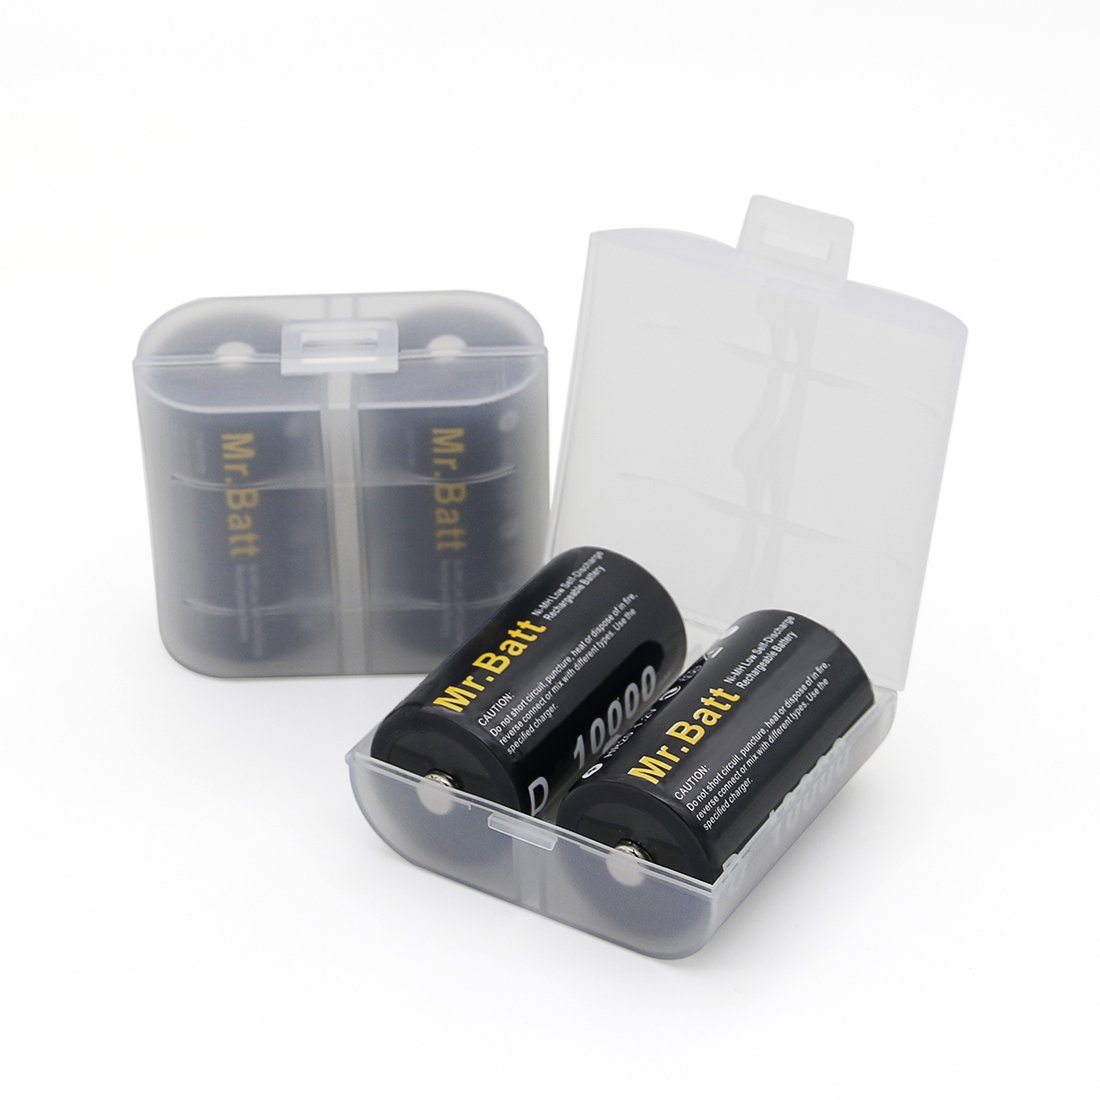 Mrbatt Rechargeable D Batteries 4 Pack With Universal Cell Phone Battery Charger Circuit C 9v Aaa Aa Home Improvement